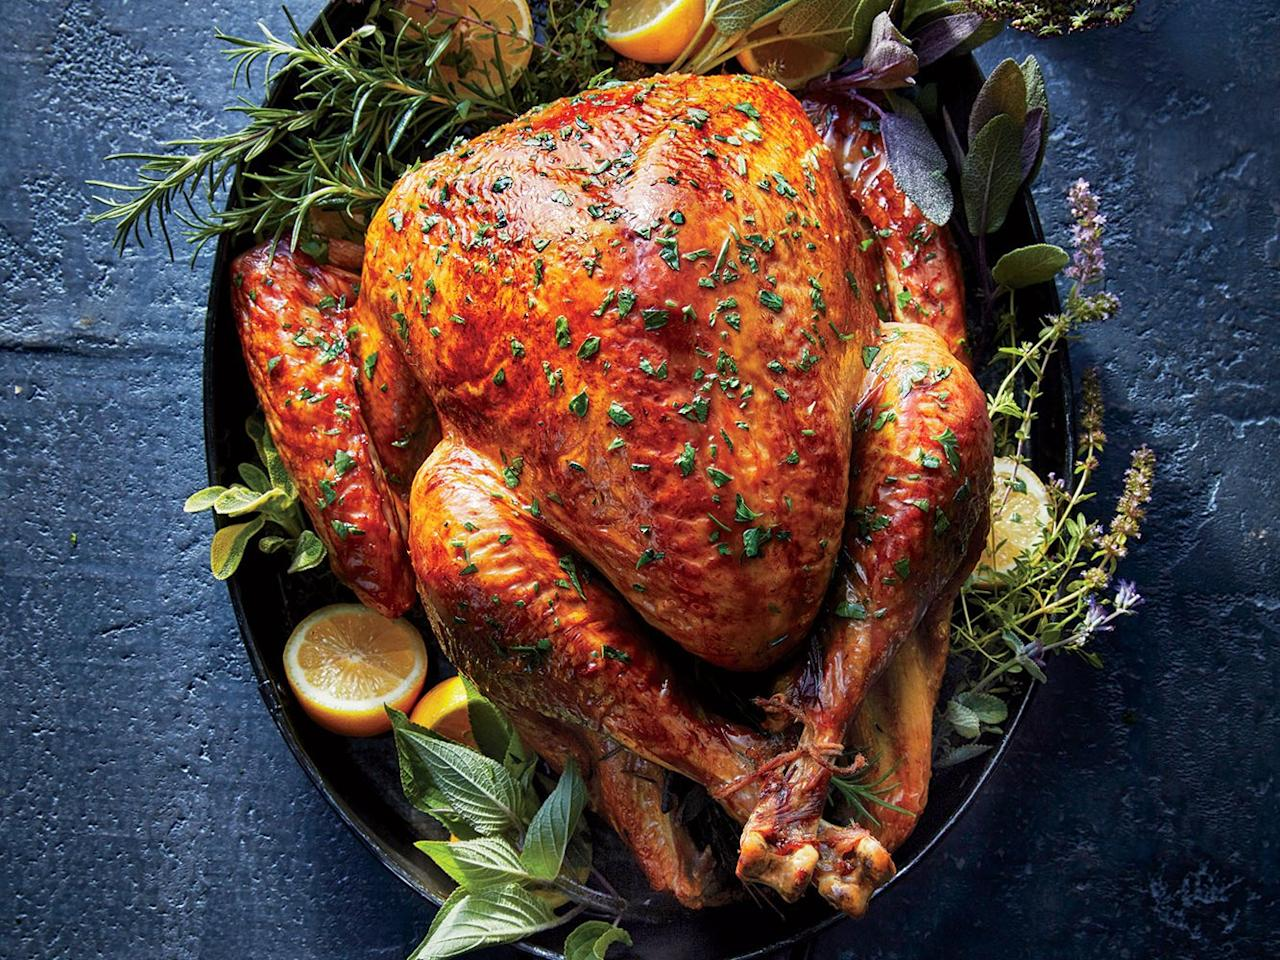 <p>Save yourself a lot of hassle and headache later. Pick up your Thanksgiving bird today.</p>